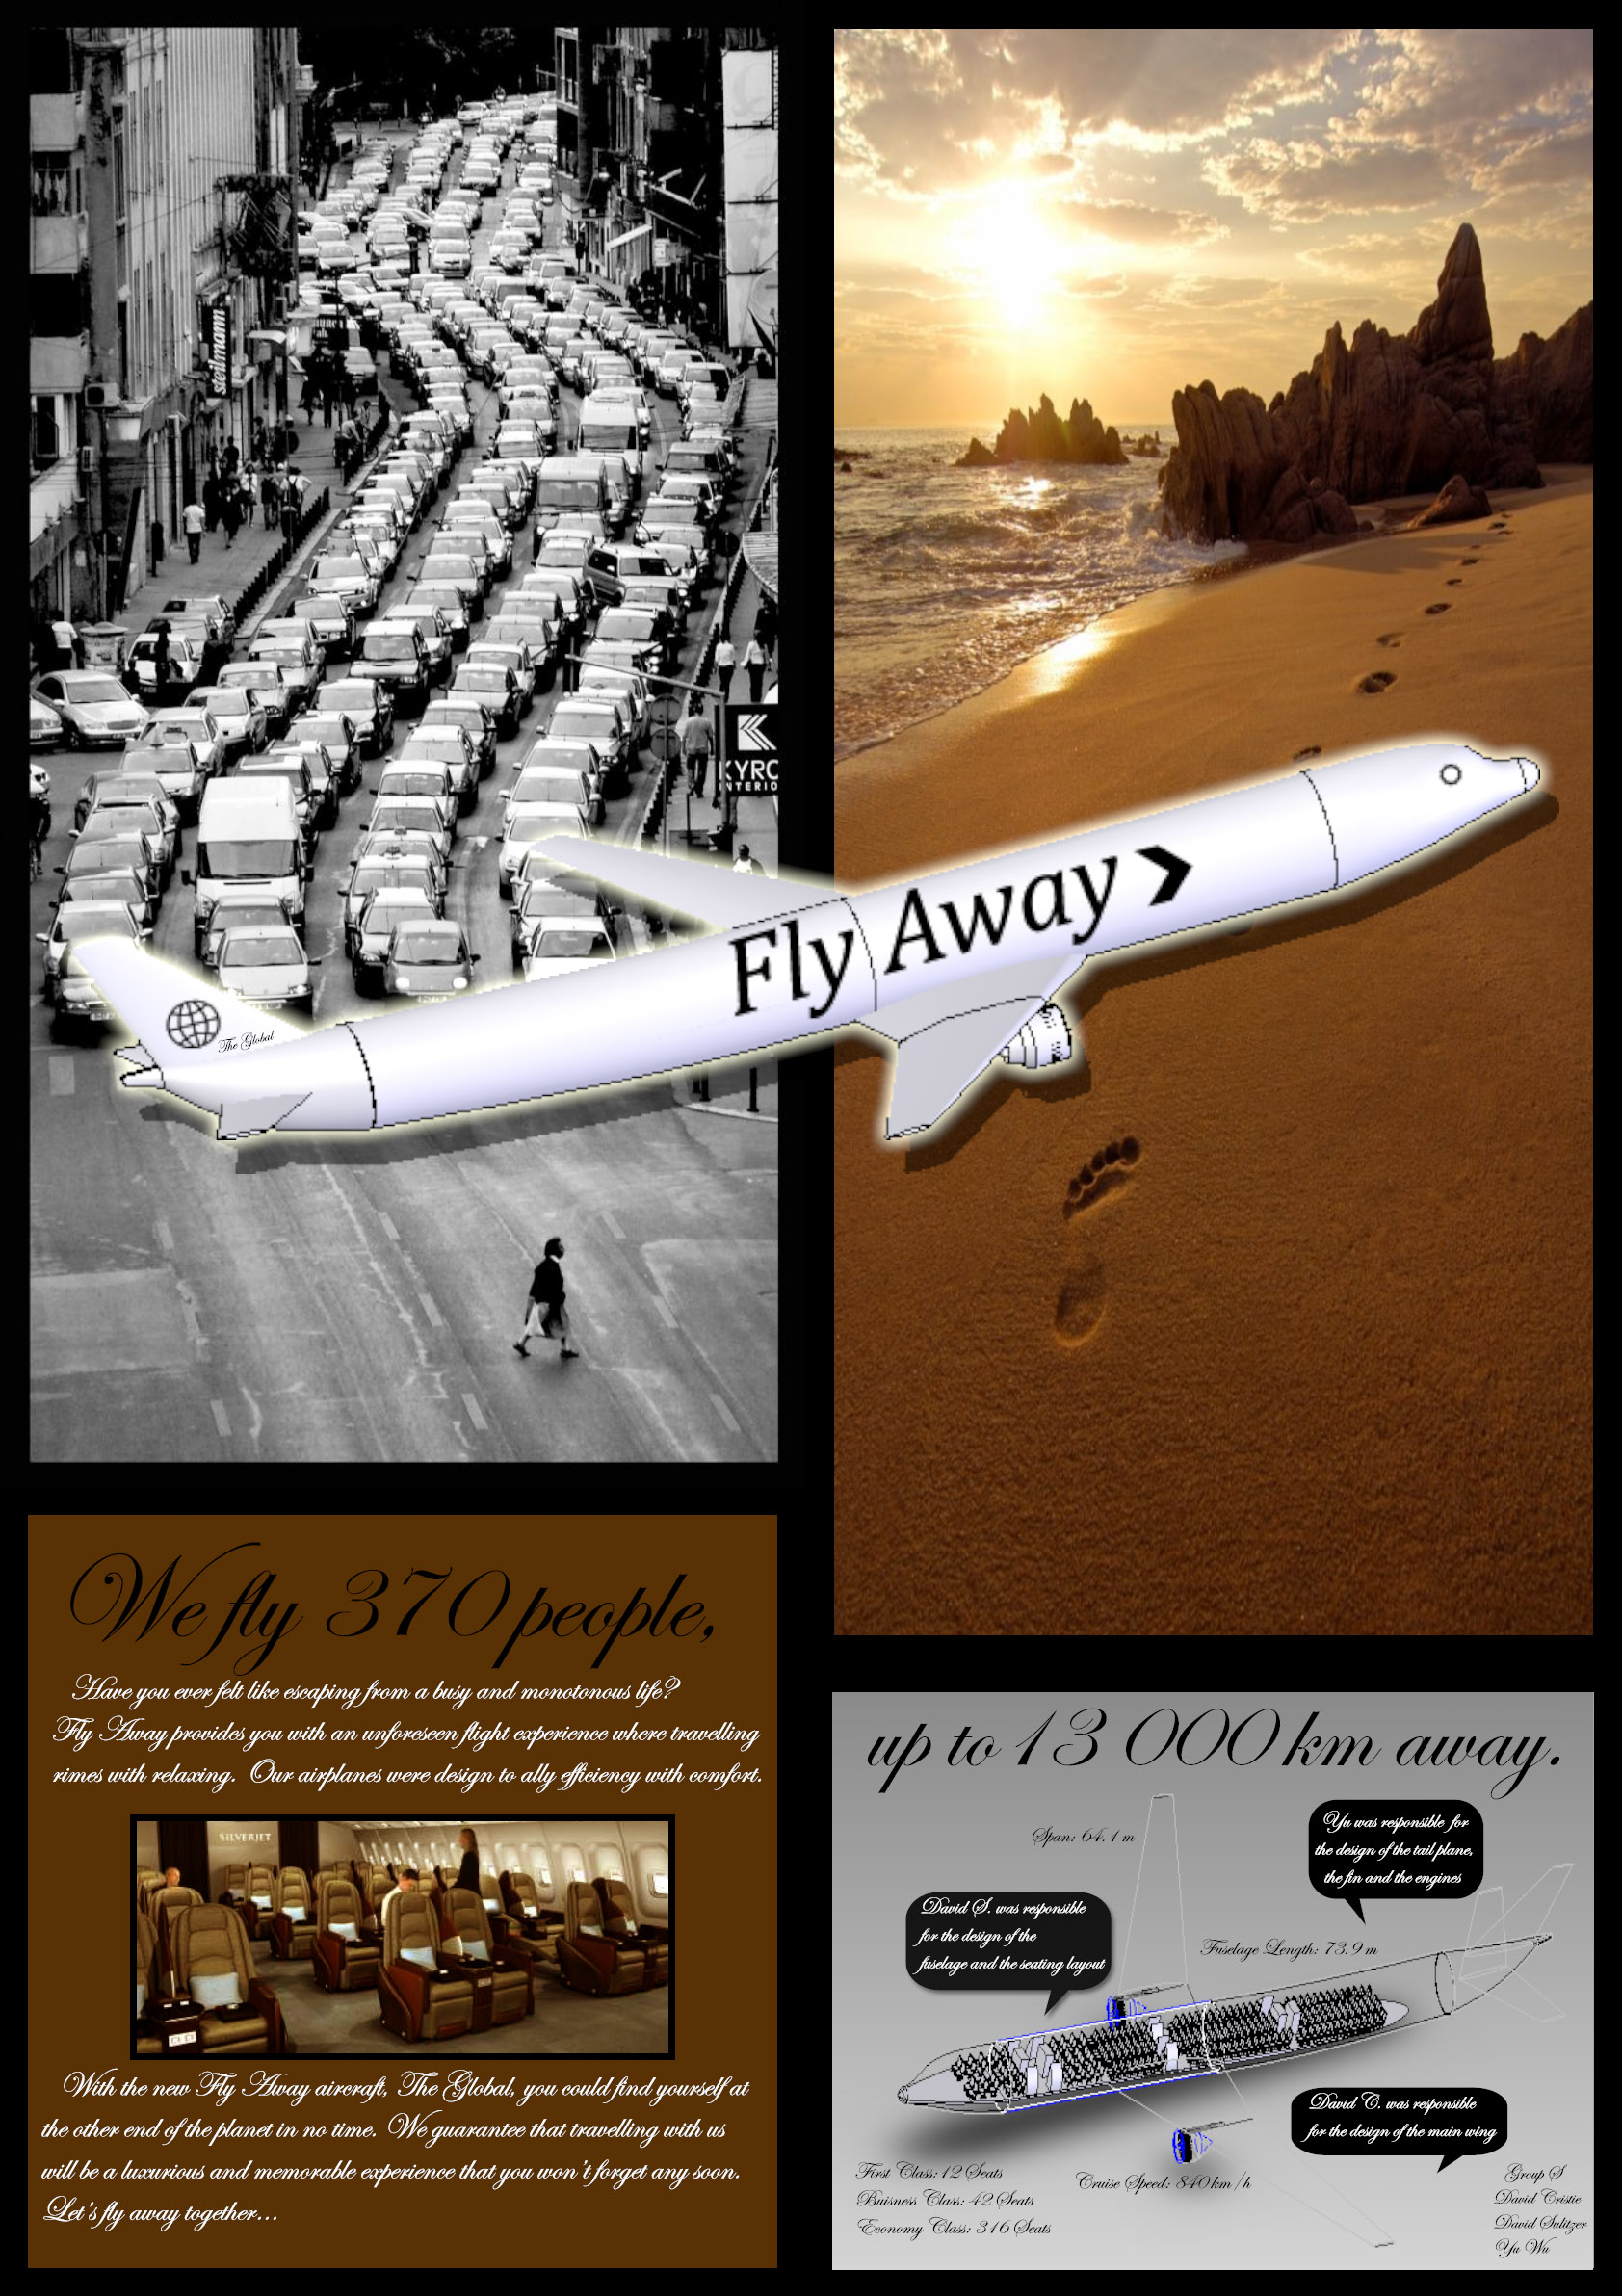 Civil Aircraft Poster.jpg